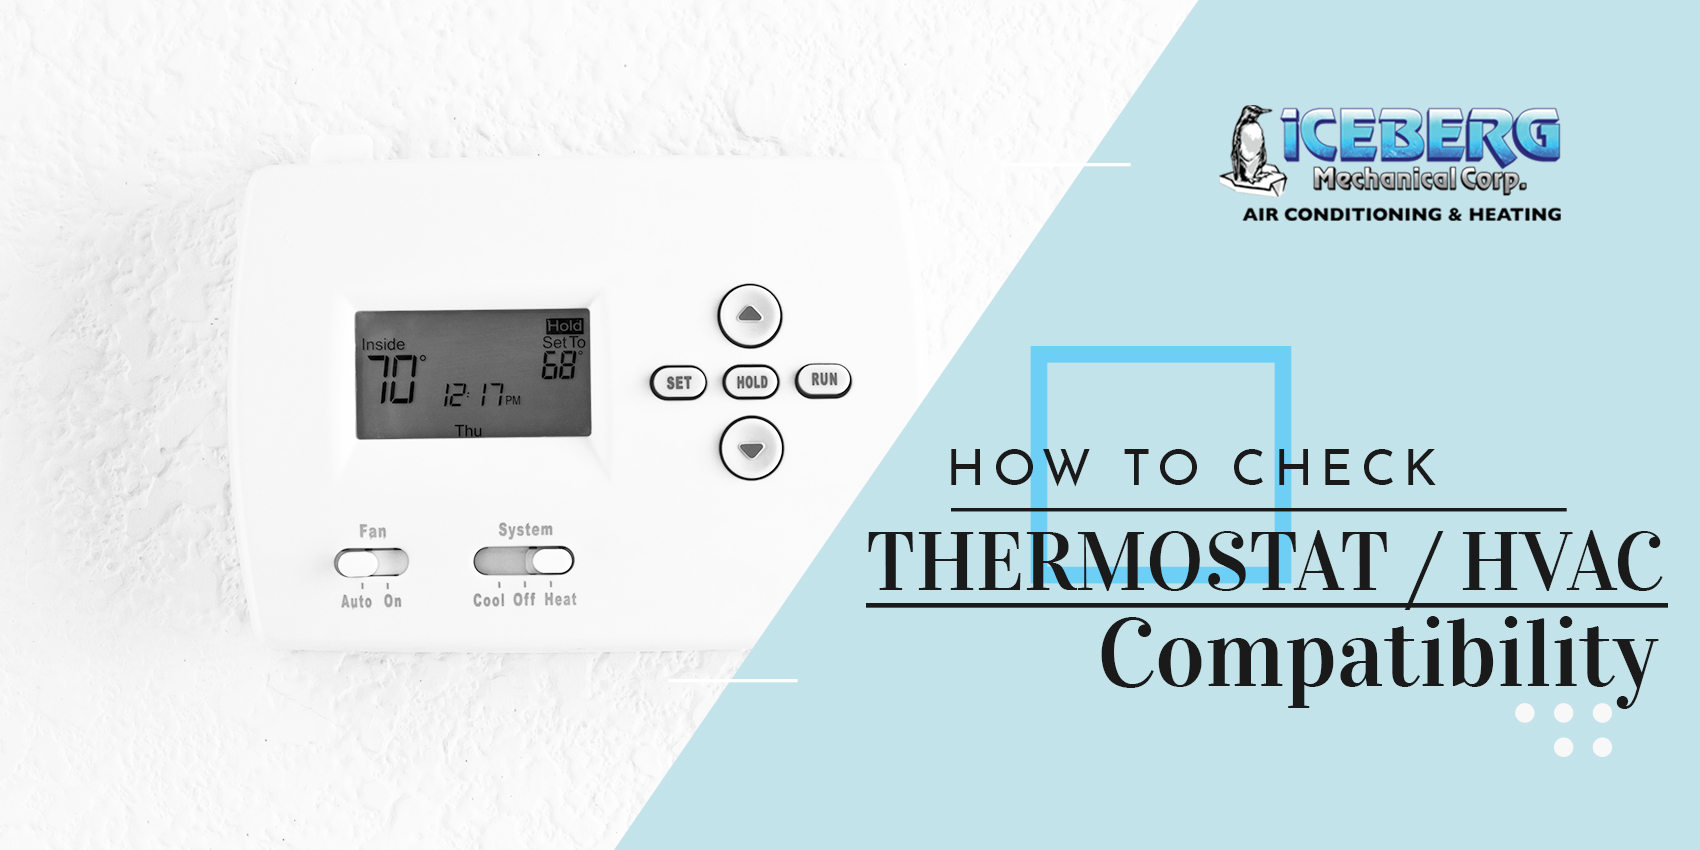 How To Check Thermostat/ HVAC Compatibility?